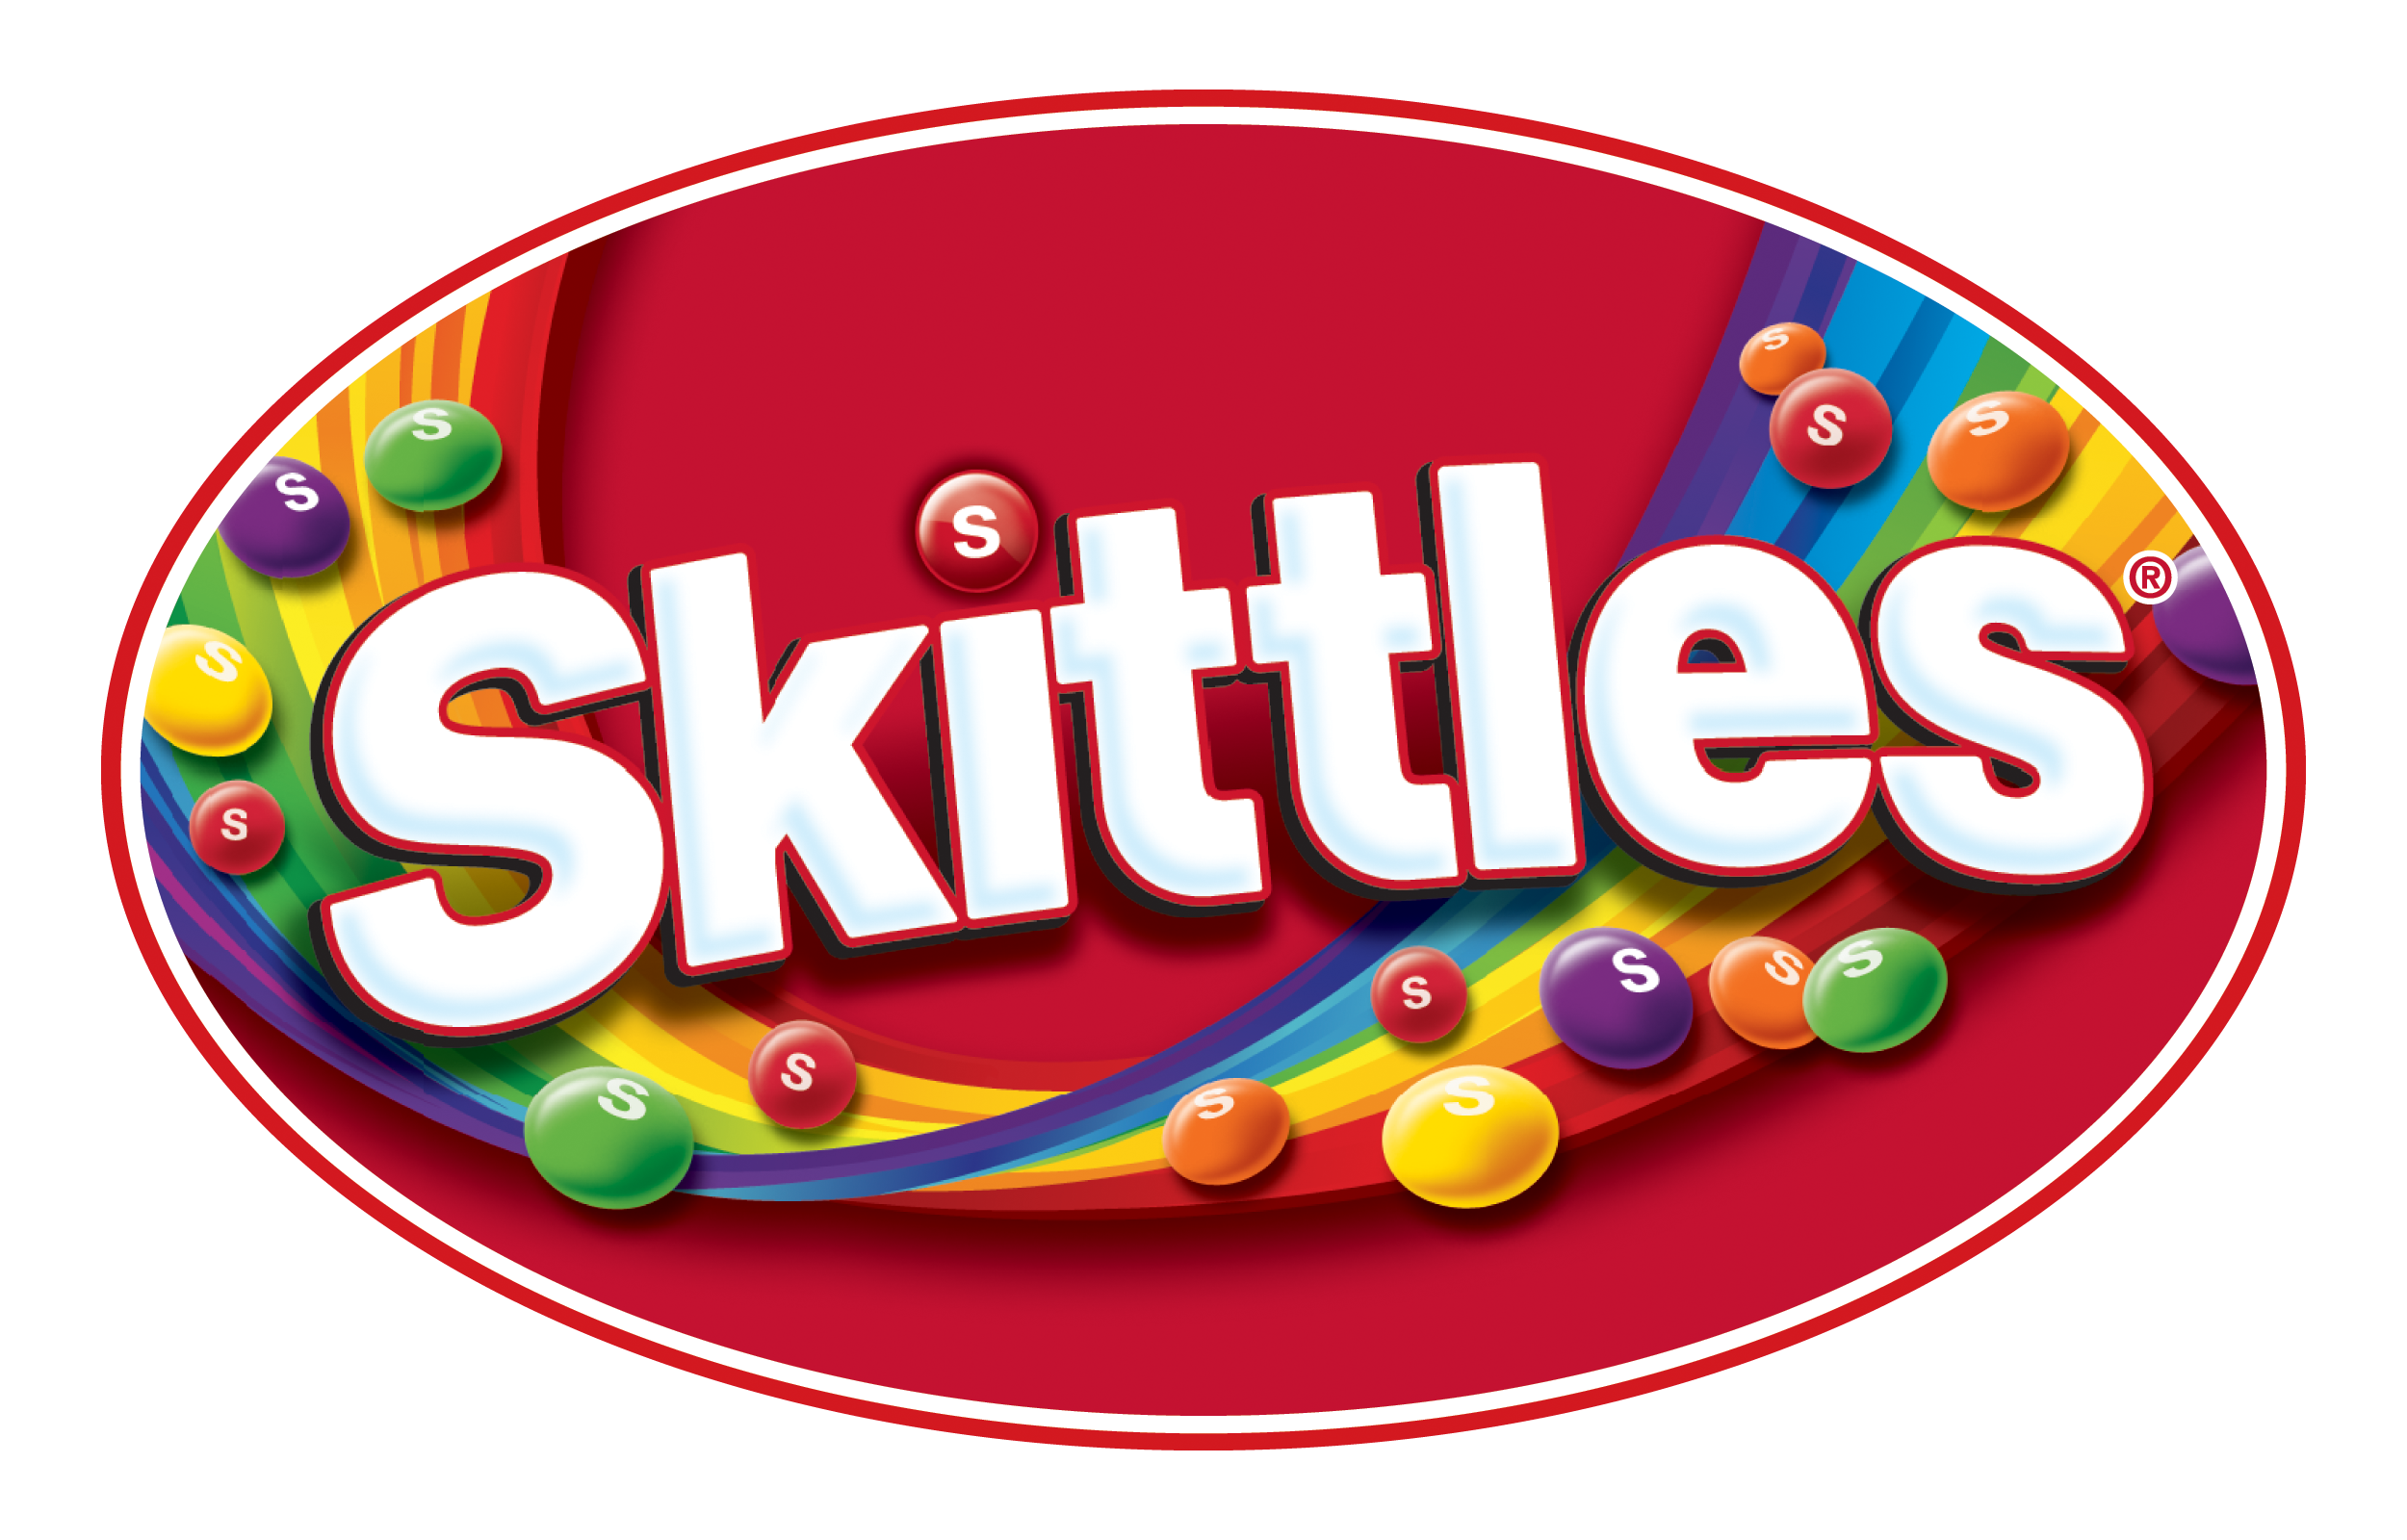 Meaning Skittles logo and symbol.